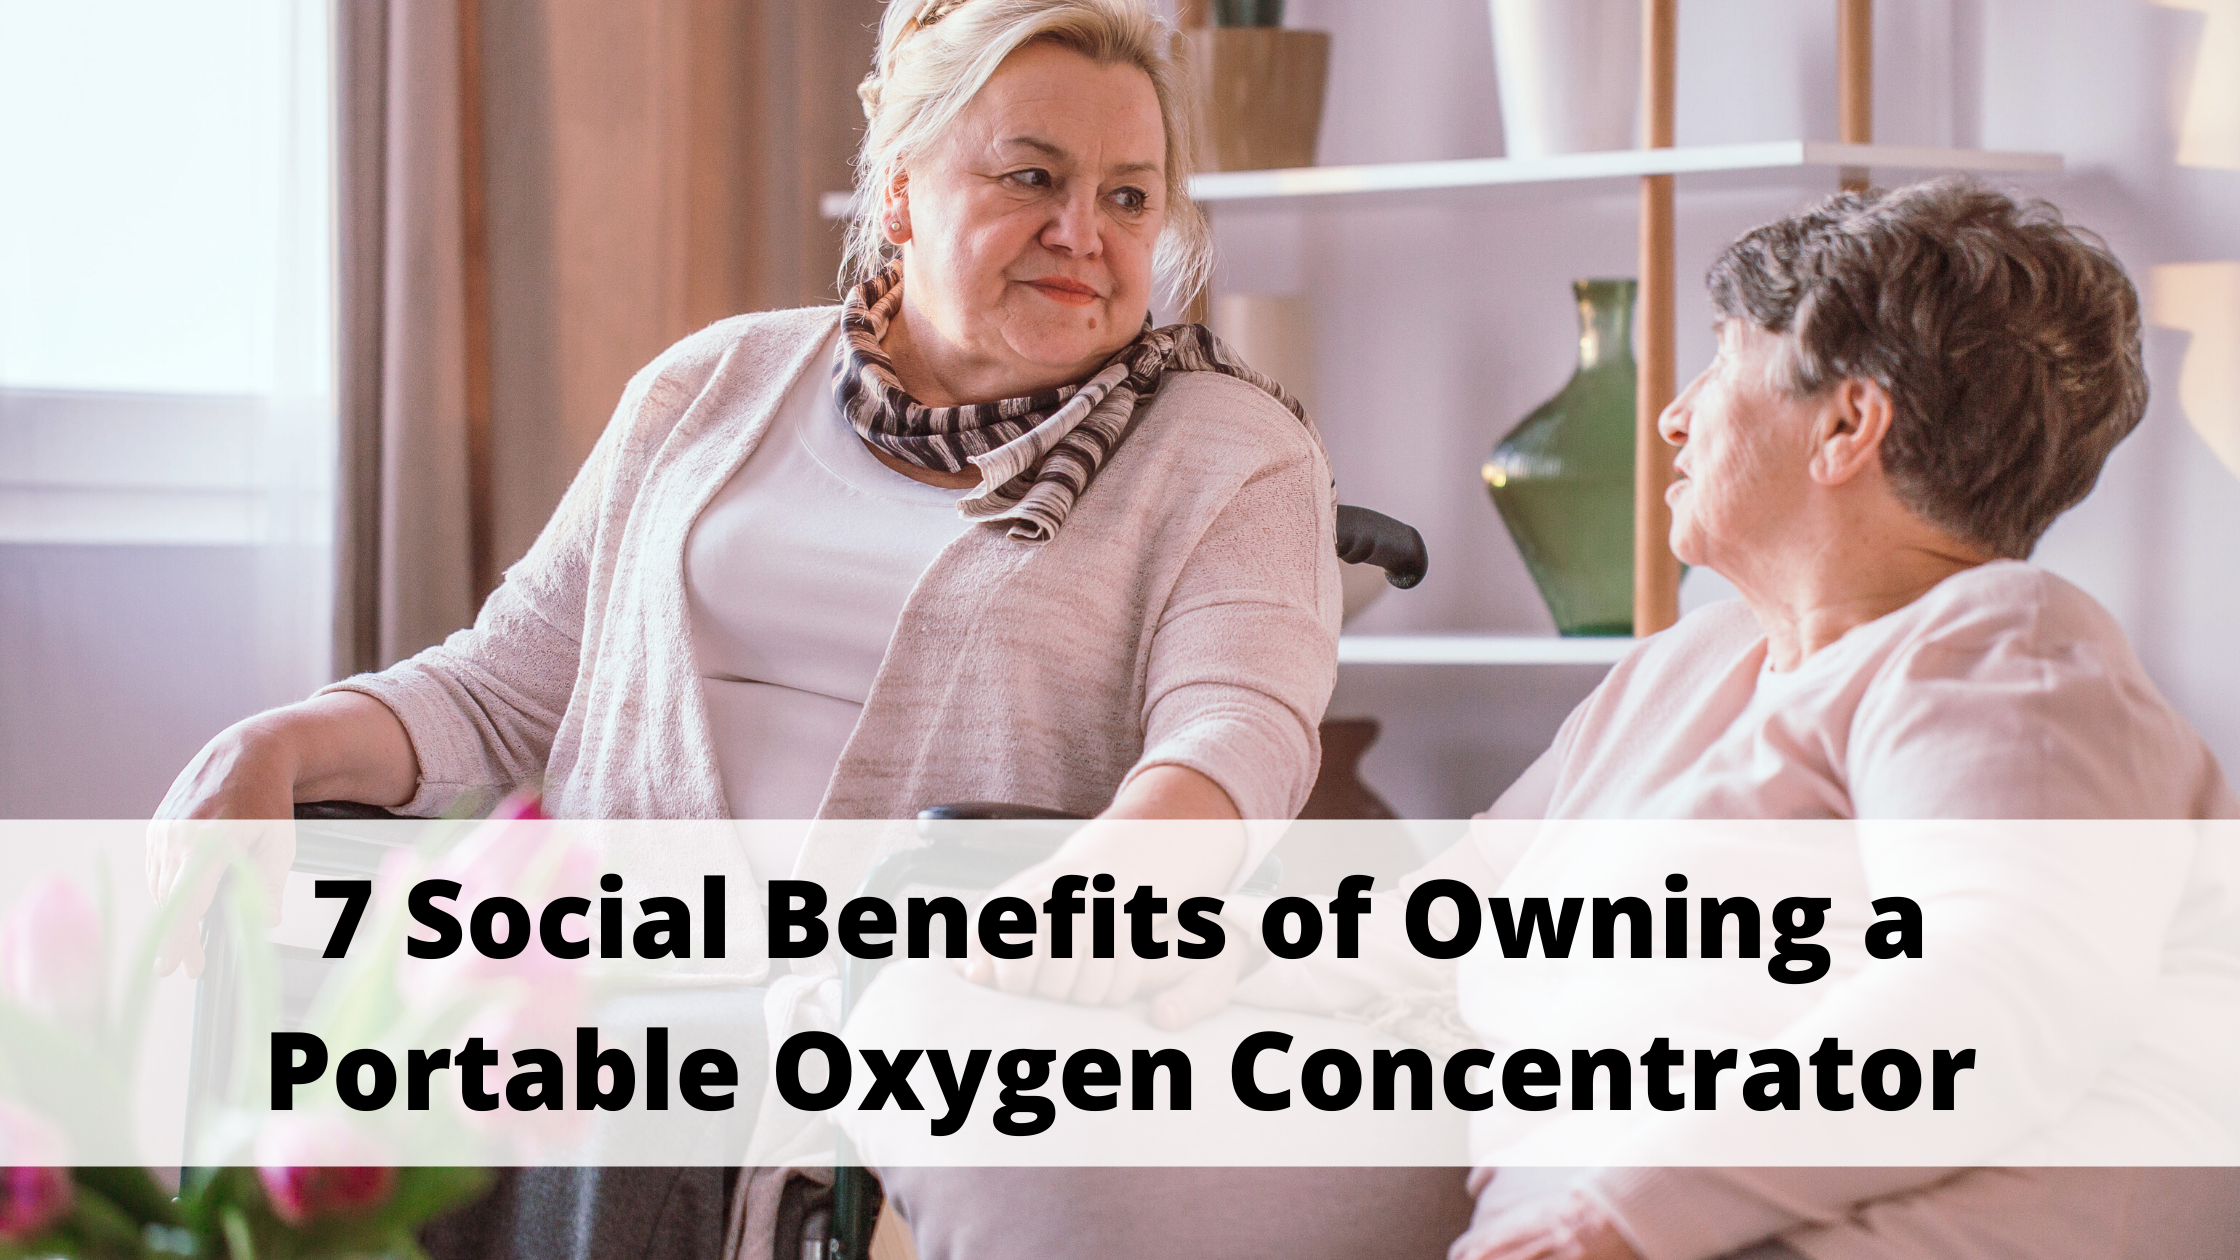 7 Social Benefits of Owning a Portable Oxygen Concentrator